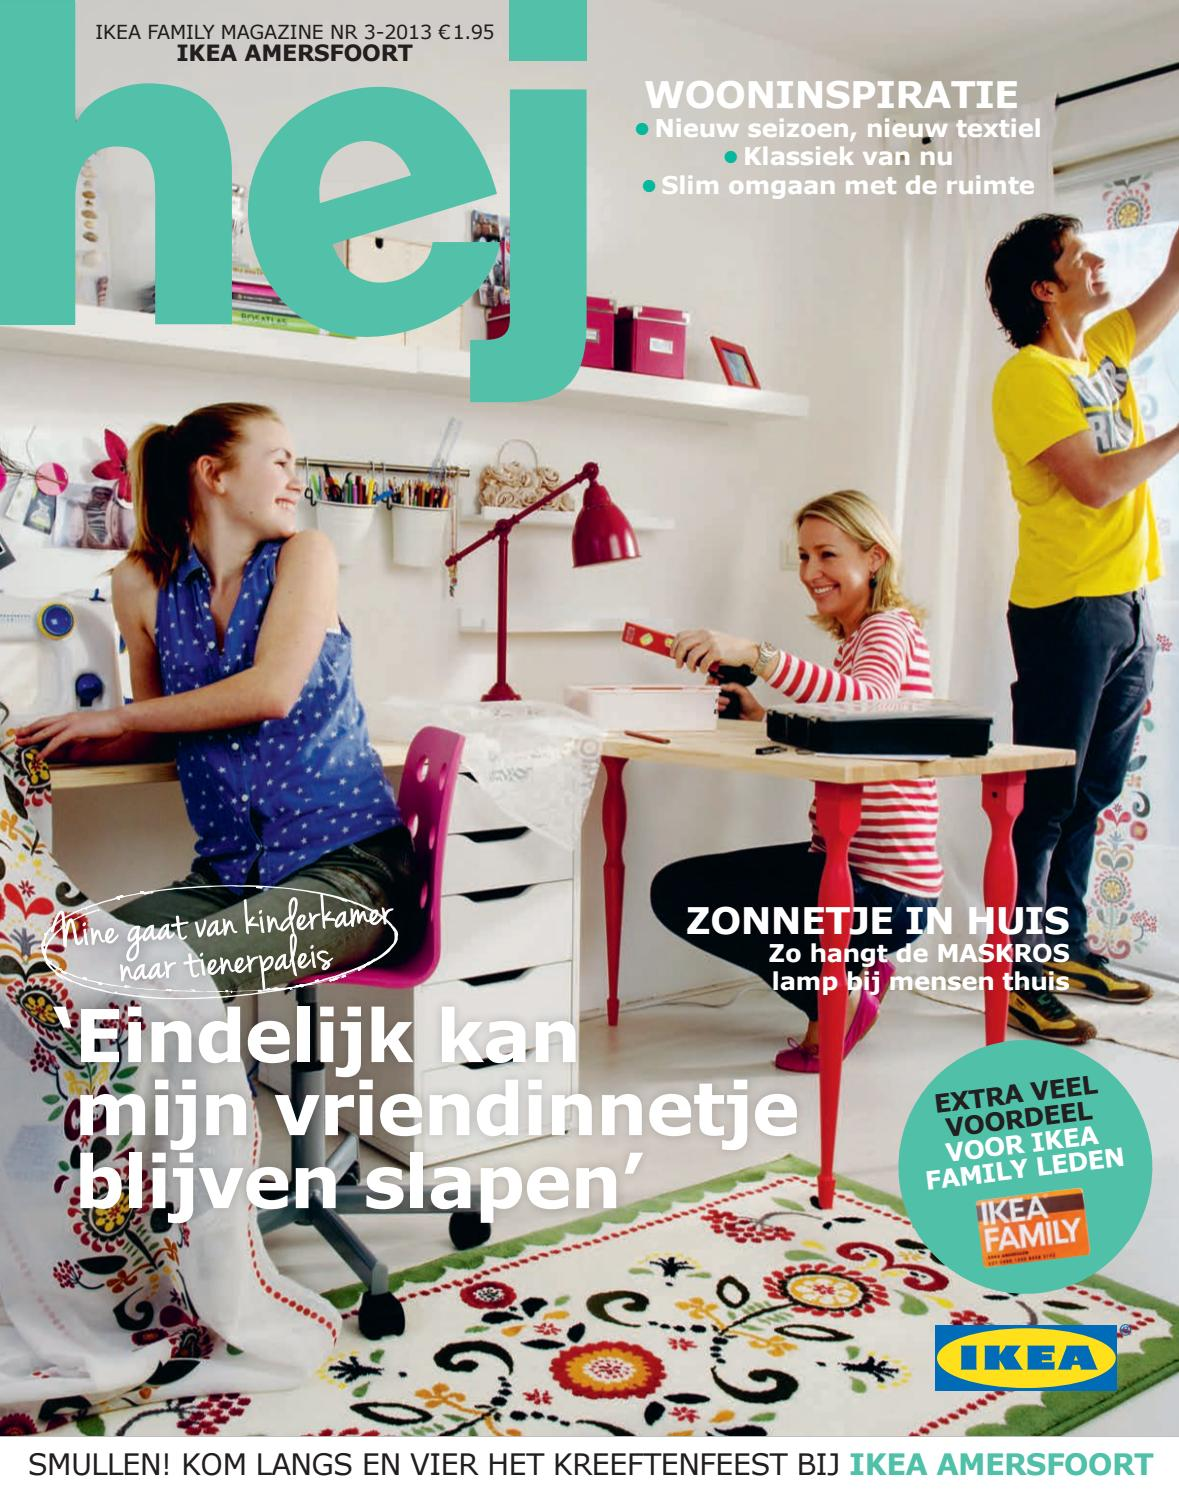 Dekenlade Ikea Hej Ikea Family Magazine 3 2013 By Headoffice Nl Issuu